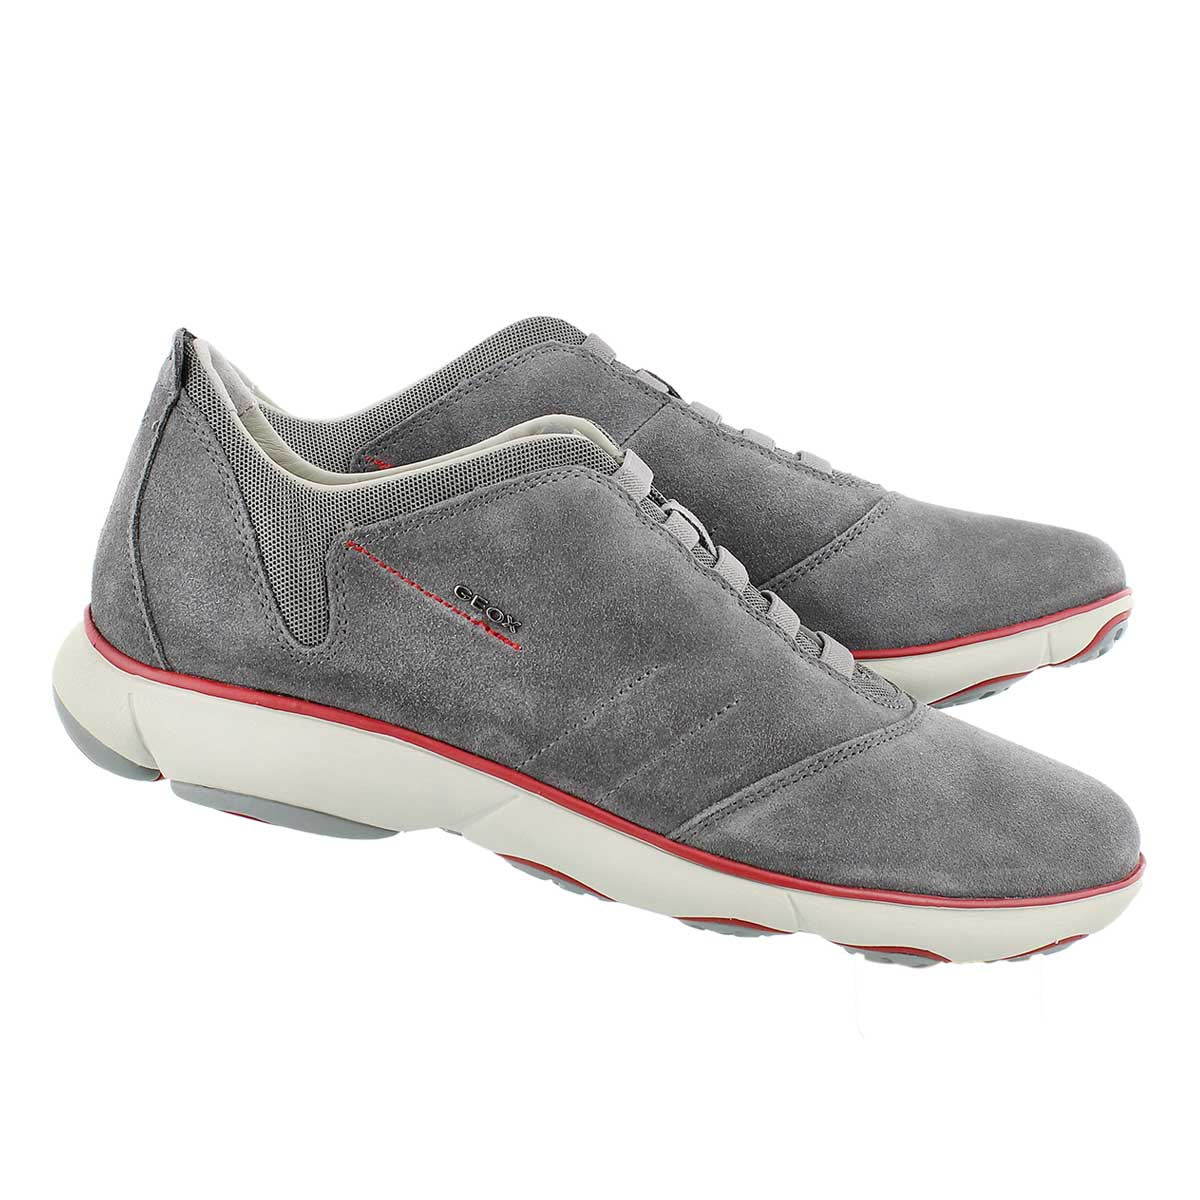 Mns Nebula grey lace up running shoe